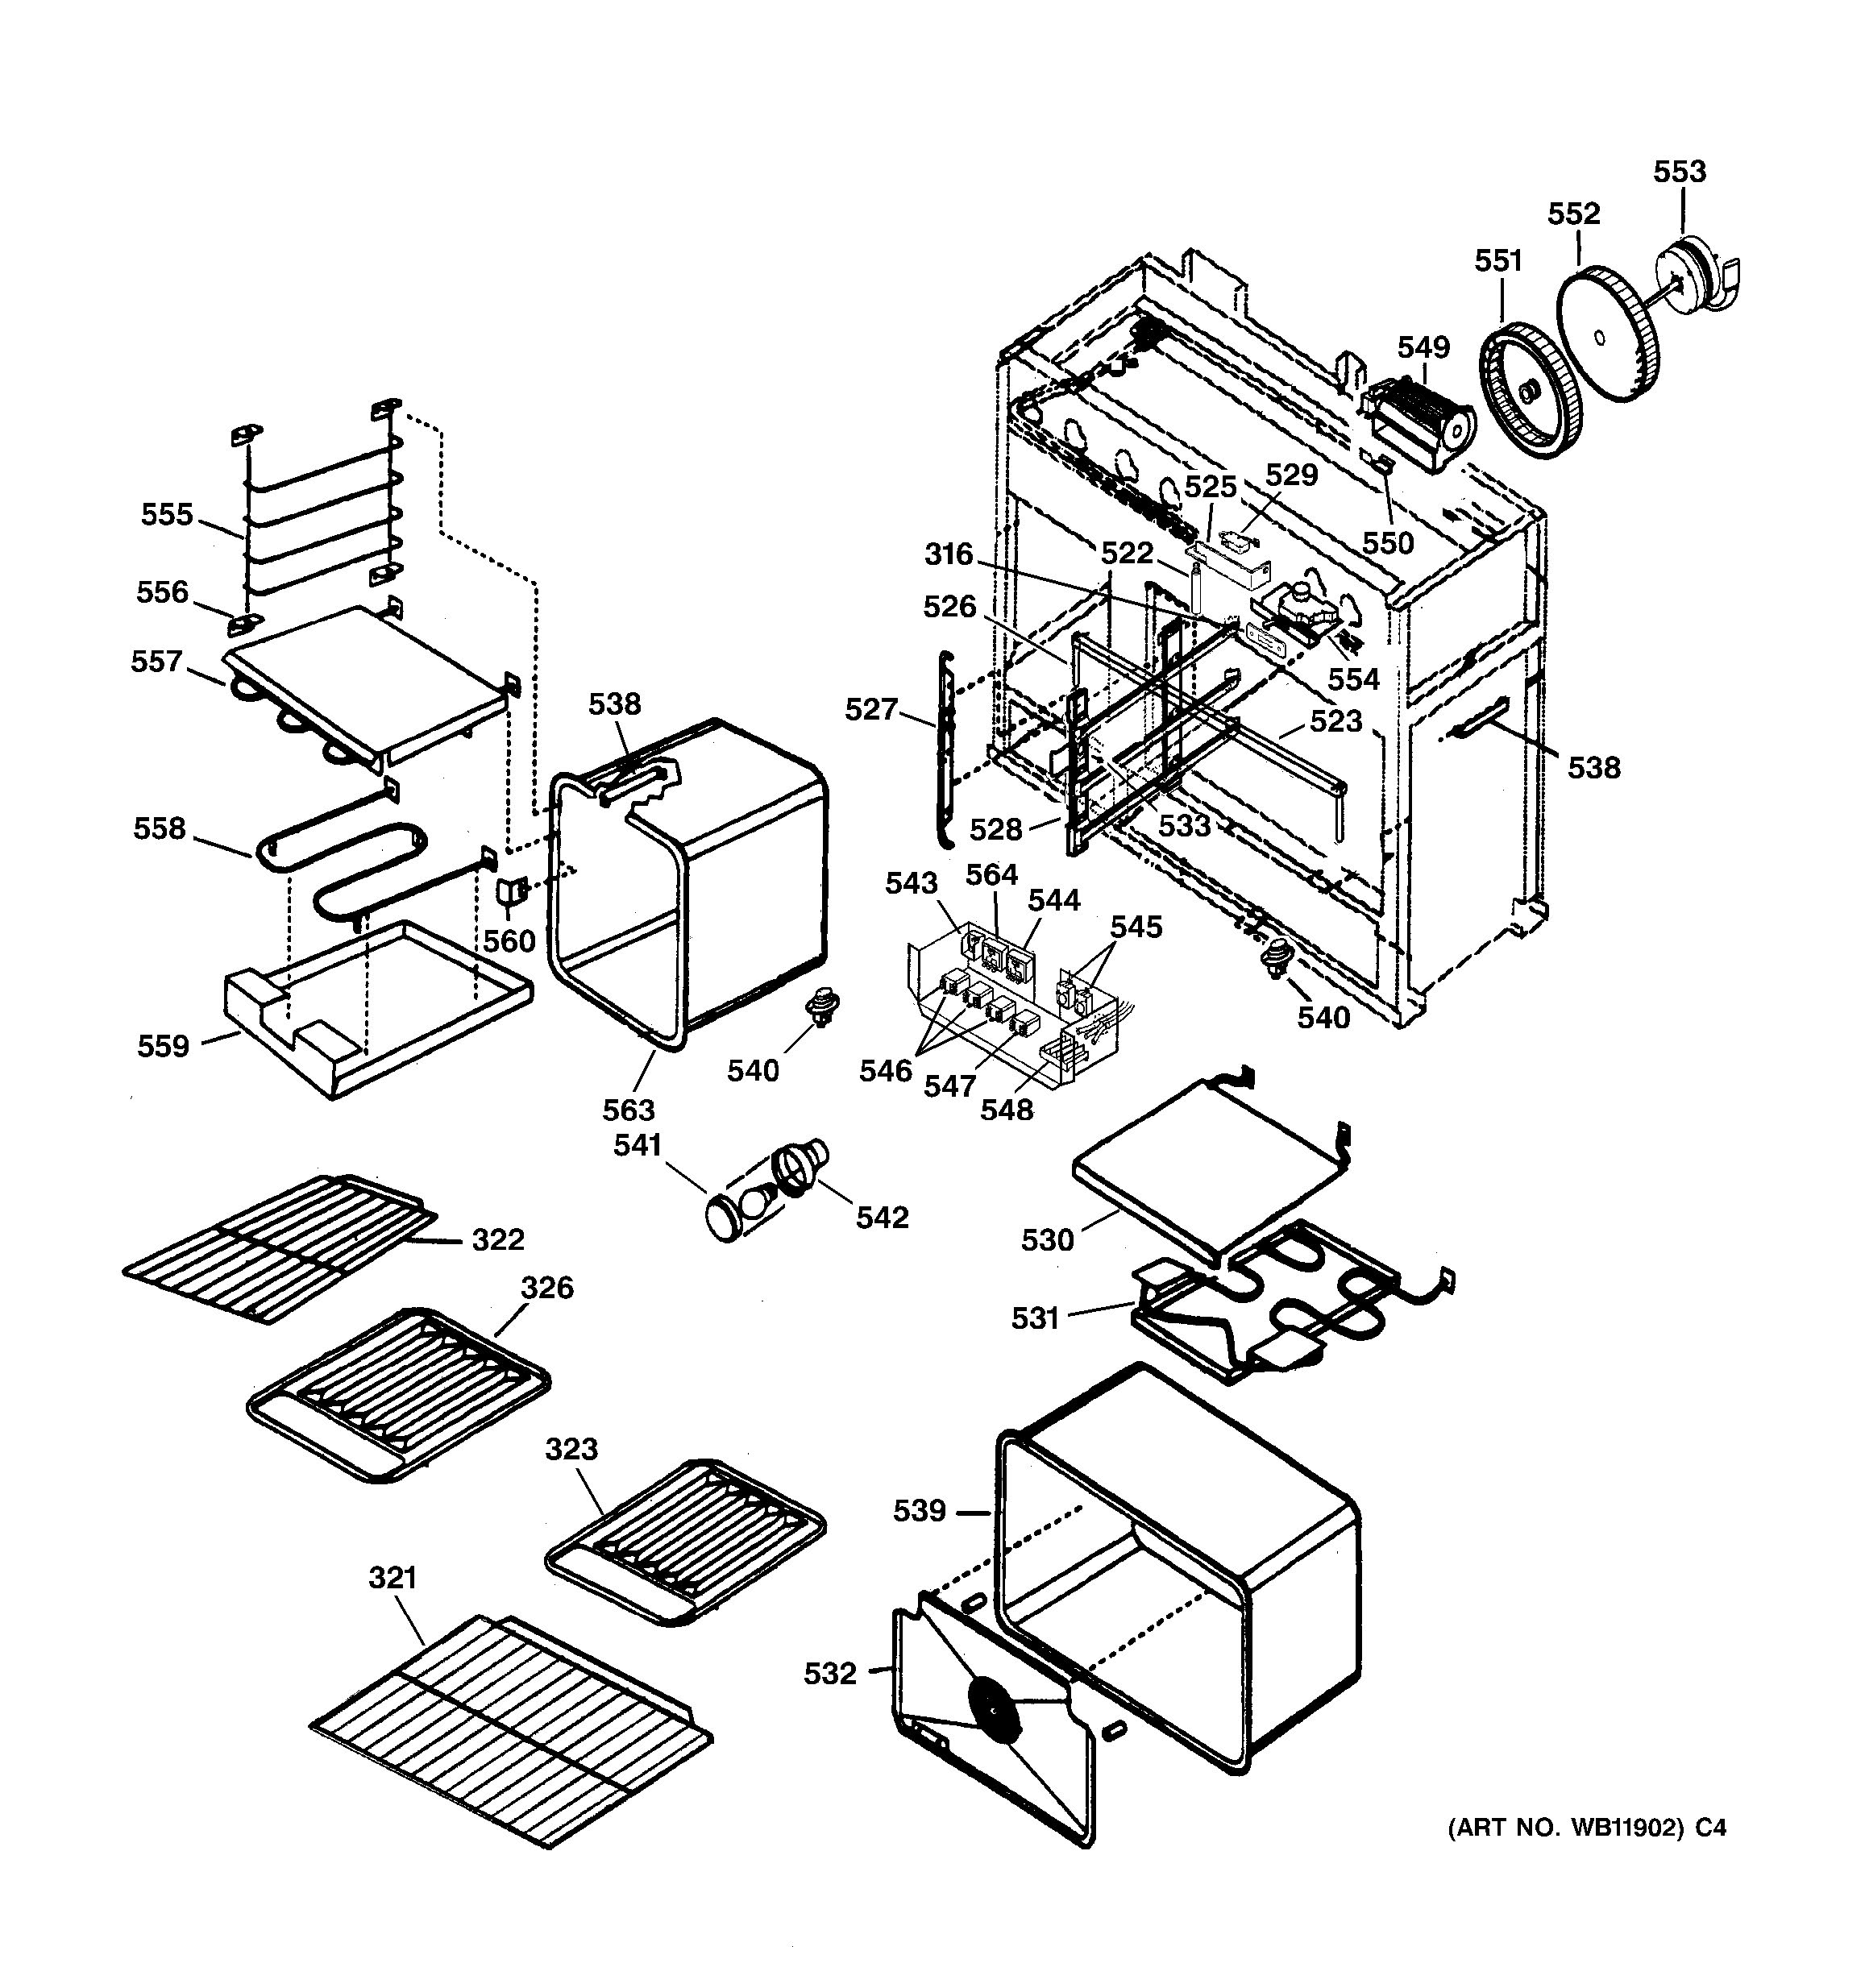 Assembly View For Oven Assembly